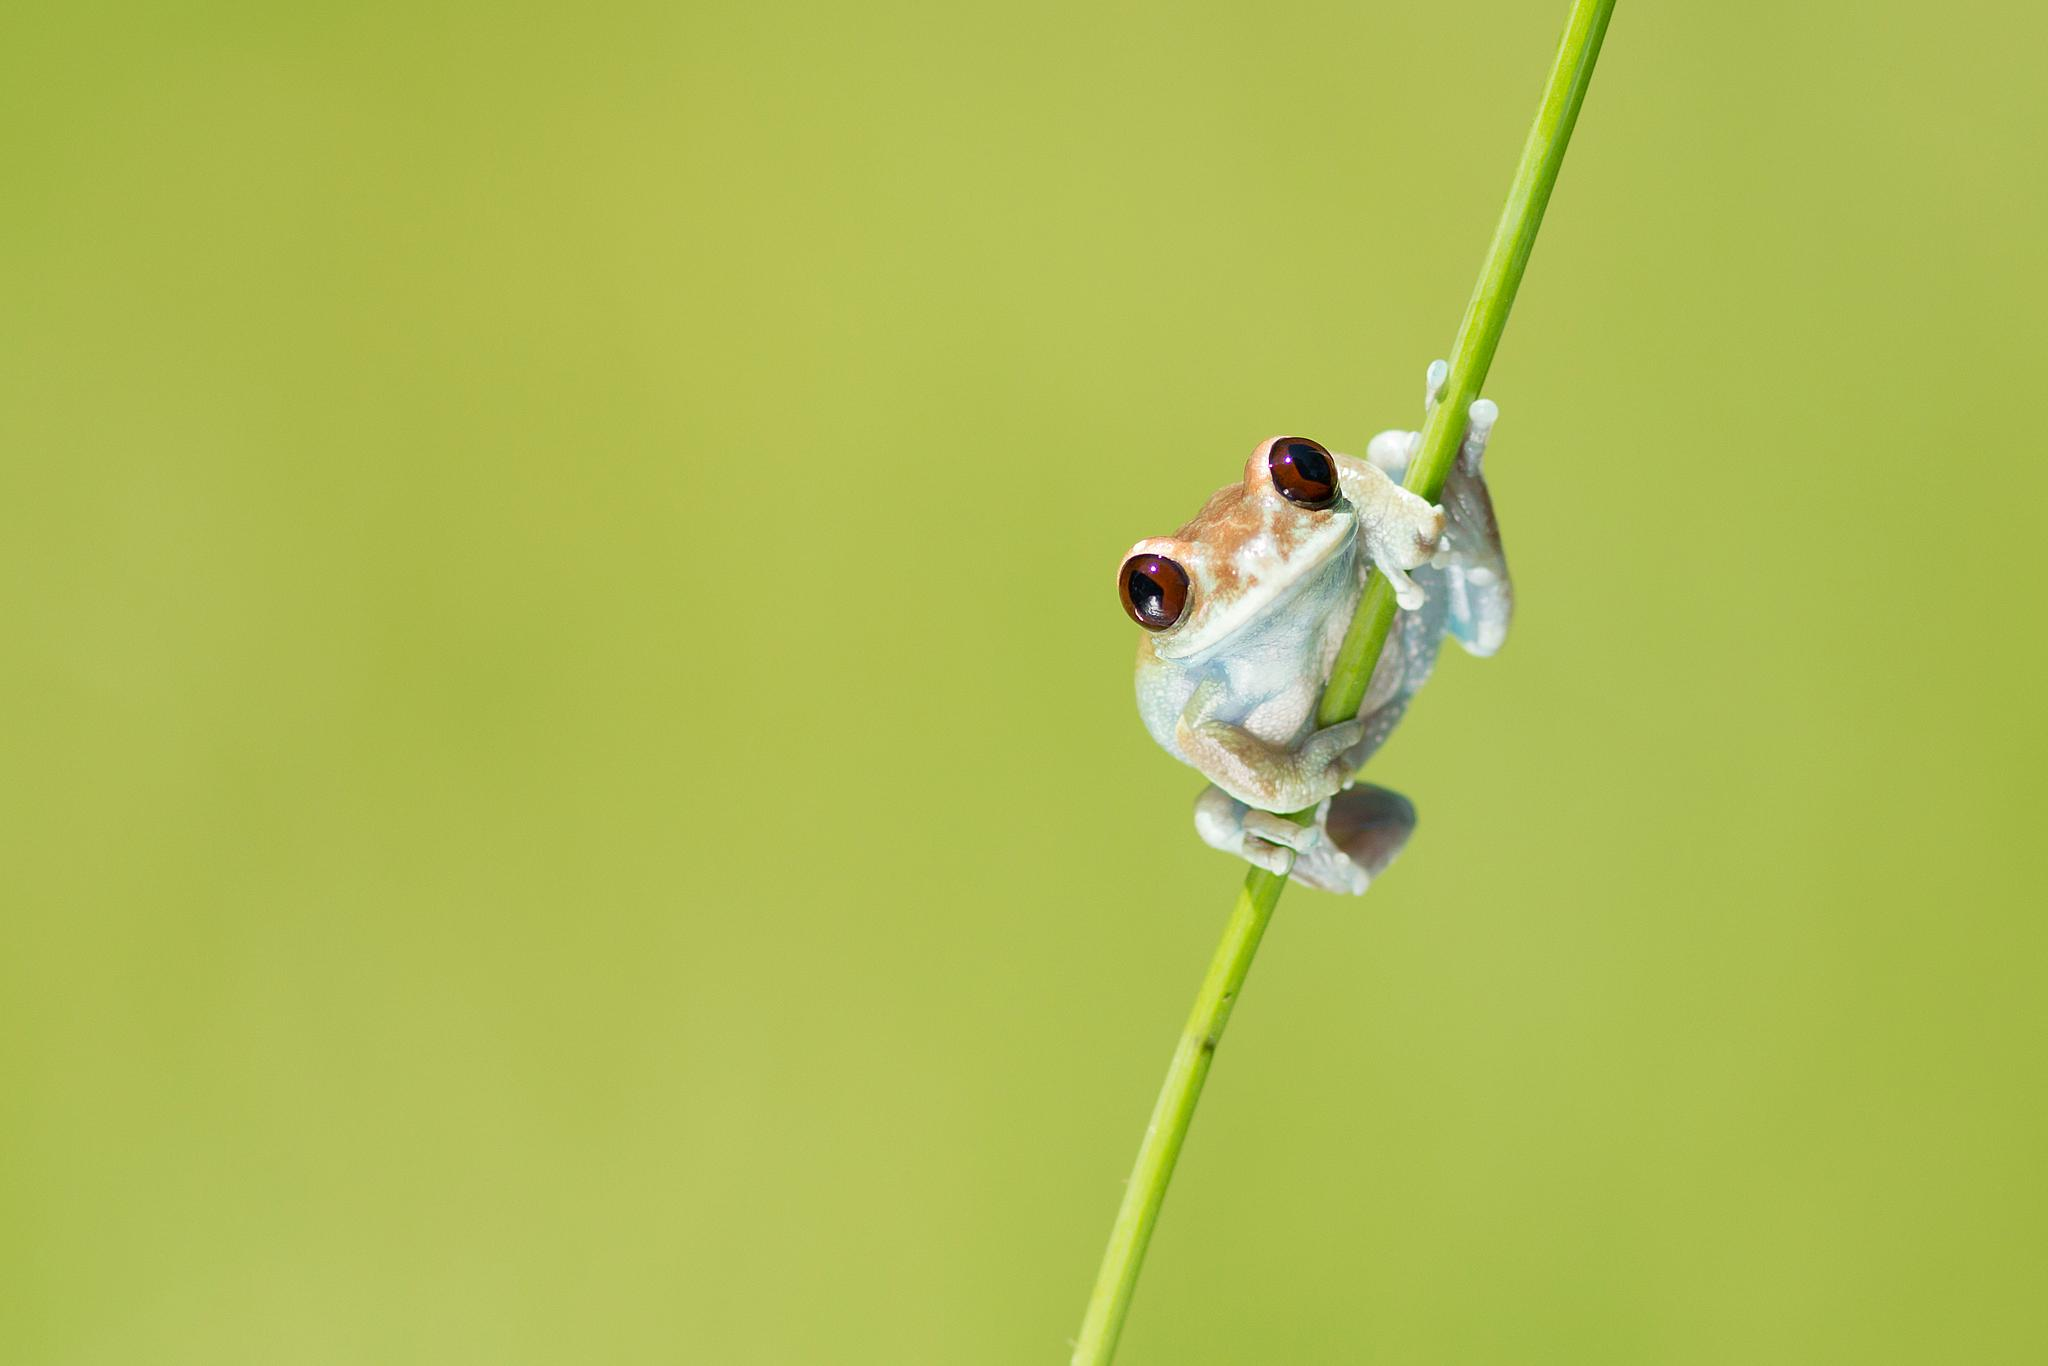 Uluguru forest tree frog by MilanZygmunt